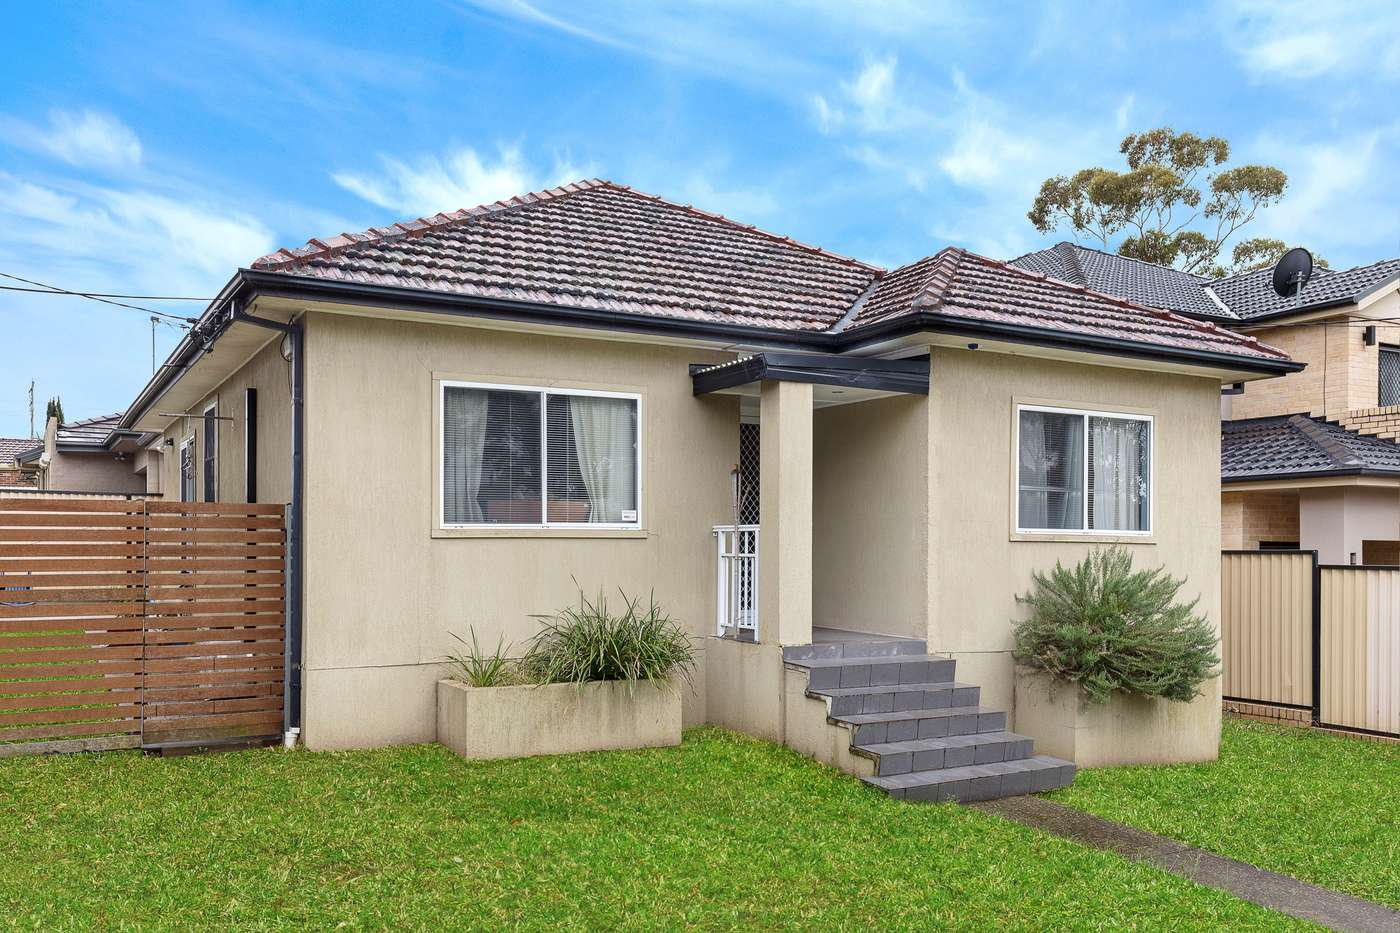 Main view of Homely house listing, 55 Morris Street, Merrylands, NSW 2160